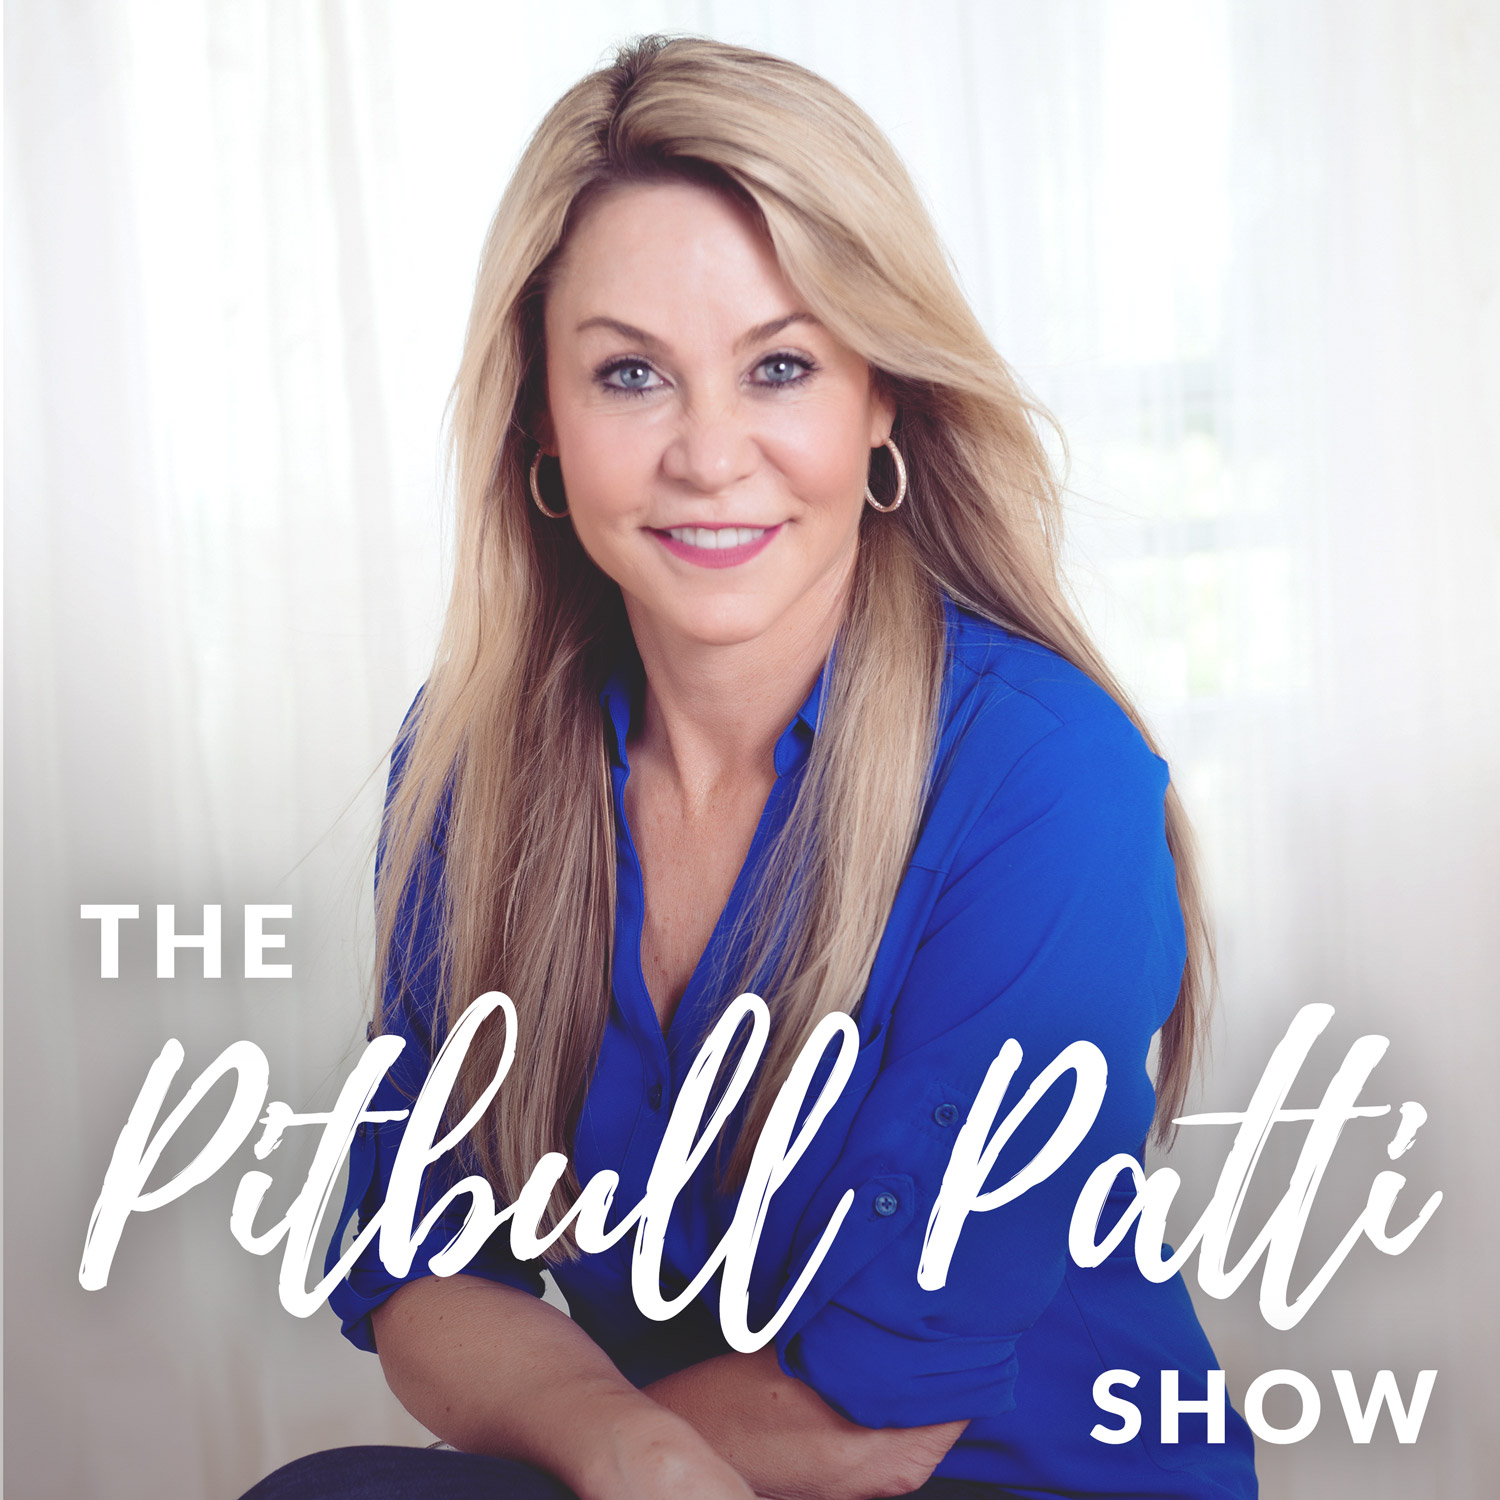 The Pitbull Patti Show